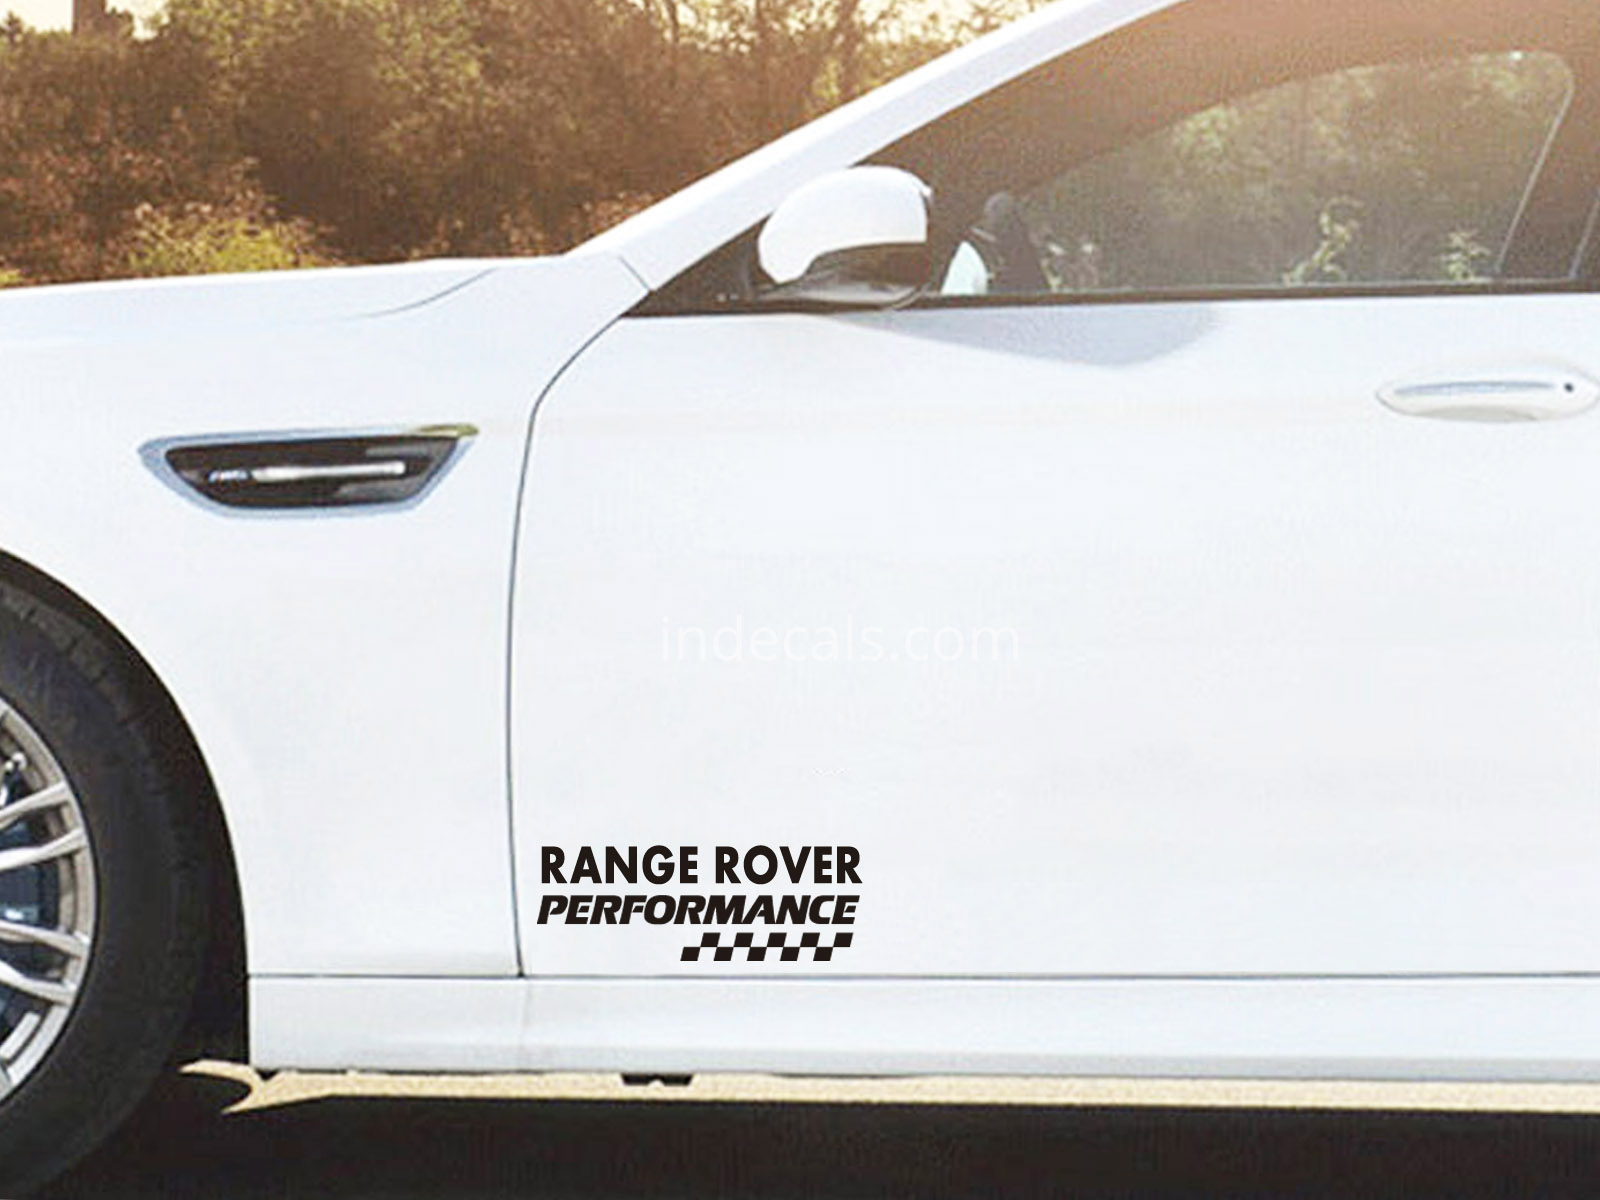 2 x Range Rover Performance Stickers for Doors - Black